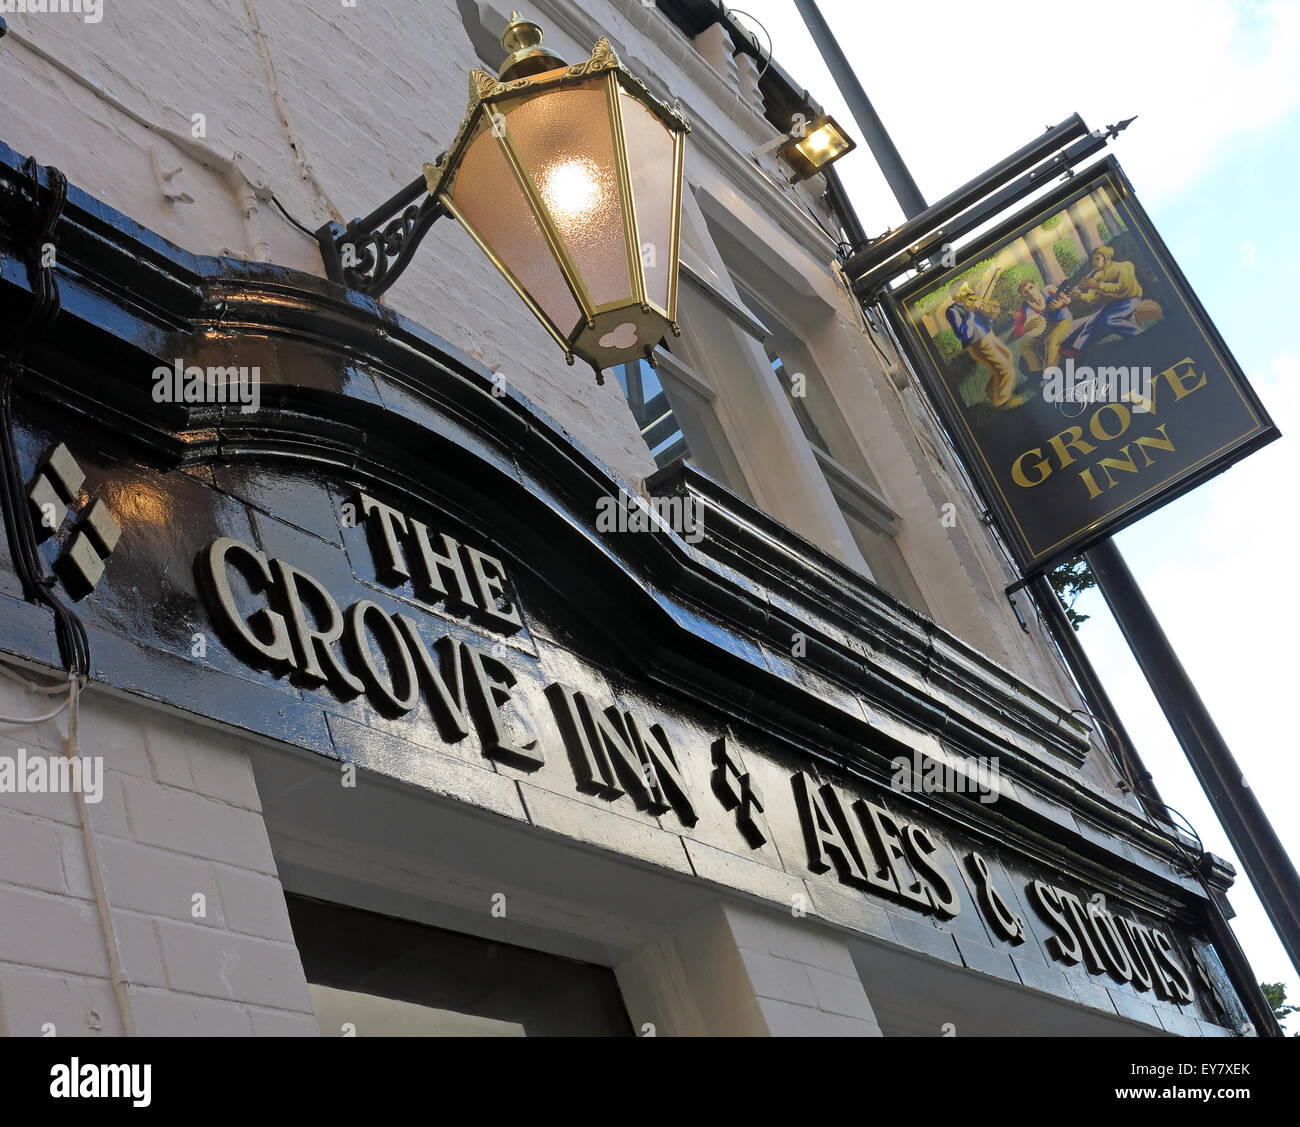 real,ale,CAMRA,bar,drink,drinkers,traditional,history,historic,Grove,Inn,Pub,Back,Row,West,Yorkshire,England,UK,English,GB,Great,Britain,British,city,centre,granary,John,Smiths,Magnet,Ales,LS115PL,LS11 5PL,ales,stouts,sign,Real Ale,Old Pub,John Smiths,Magnet Ales,LS11 5PL,GoTonySmith,looking,up,Buy Pictures of,Buy Images Of,Looking Up